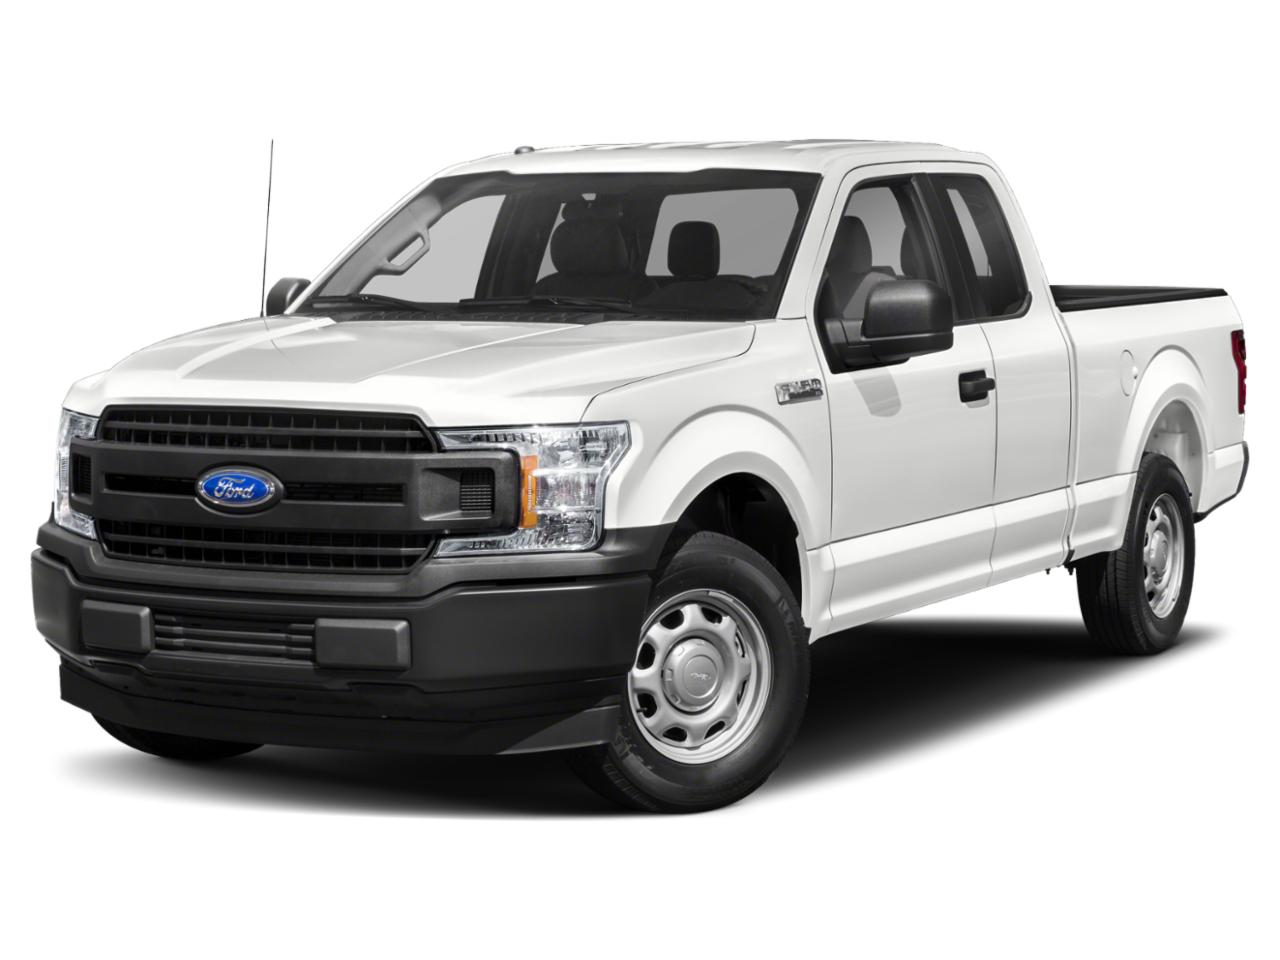 2018 Ford F-150 Vehicle Photo in Cartersville, GA 30120